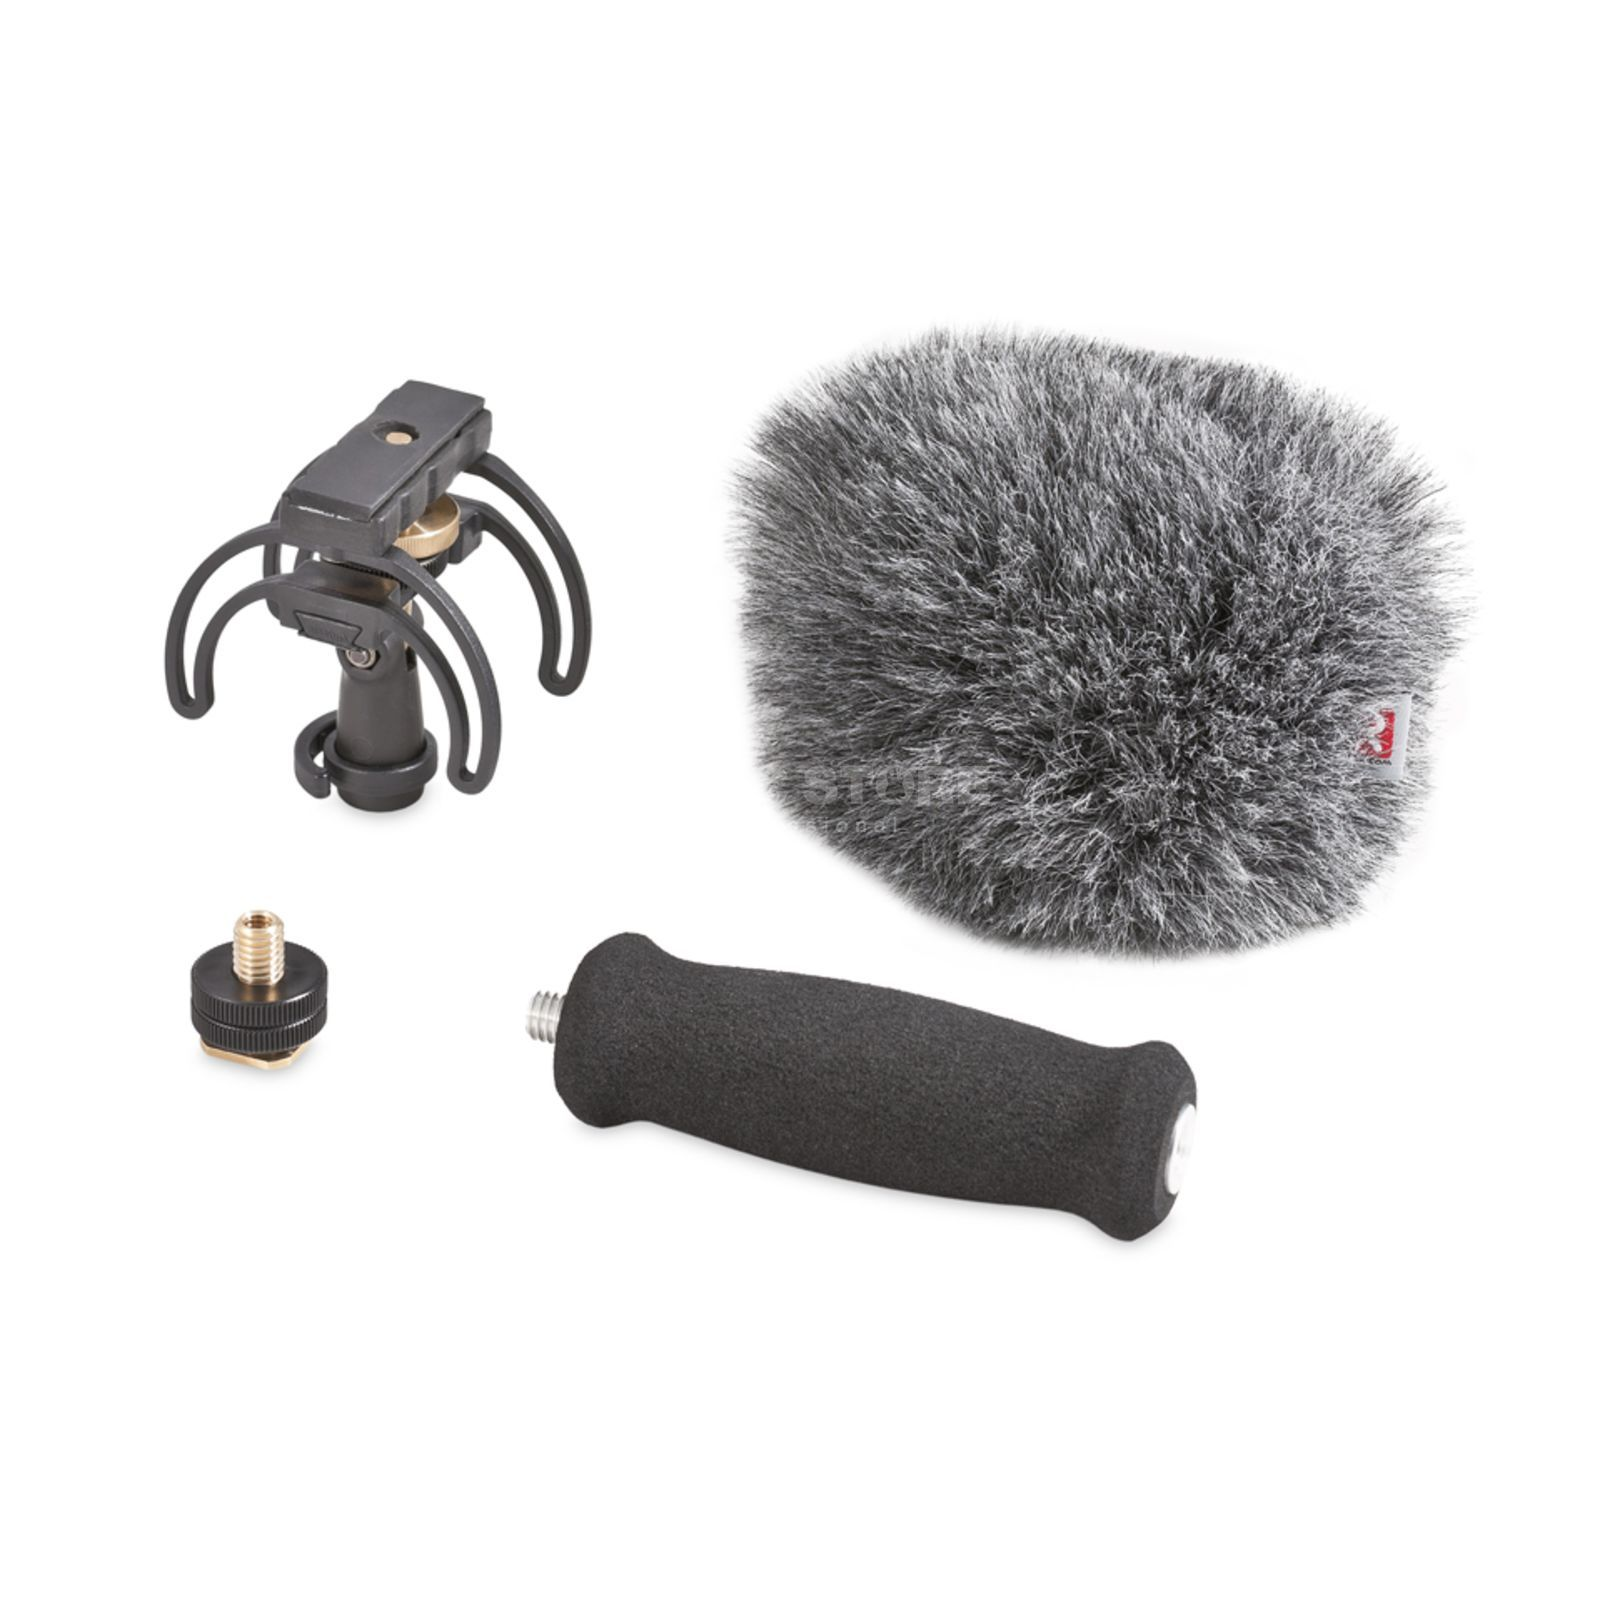 Rycote Portable Recorder Audio Kit für den Zoom H4n Produktbild